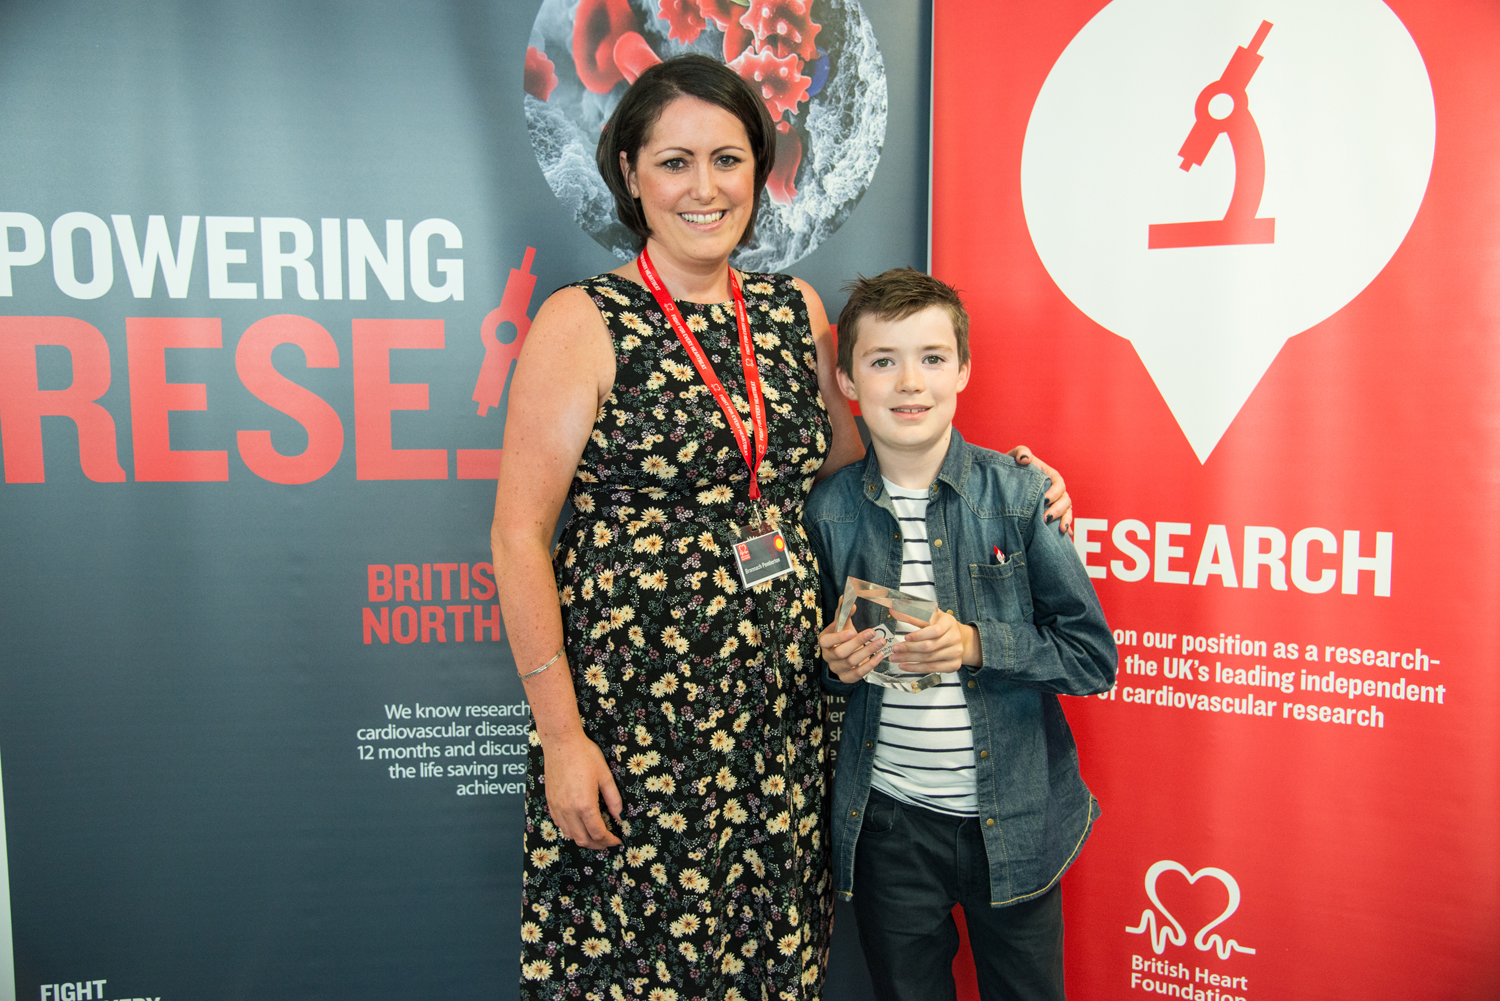 Bronnach Pemberton wins the BHF Heart Heroes Influencing Award in the North of England. Bronnach is pictured with her son Jared.